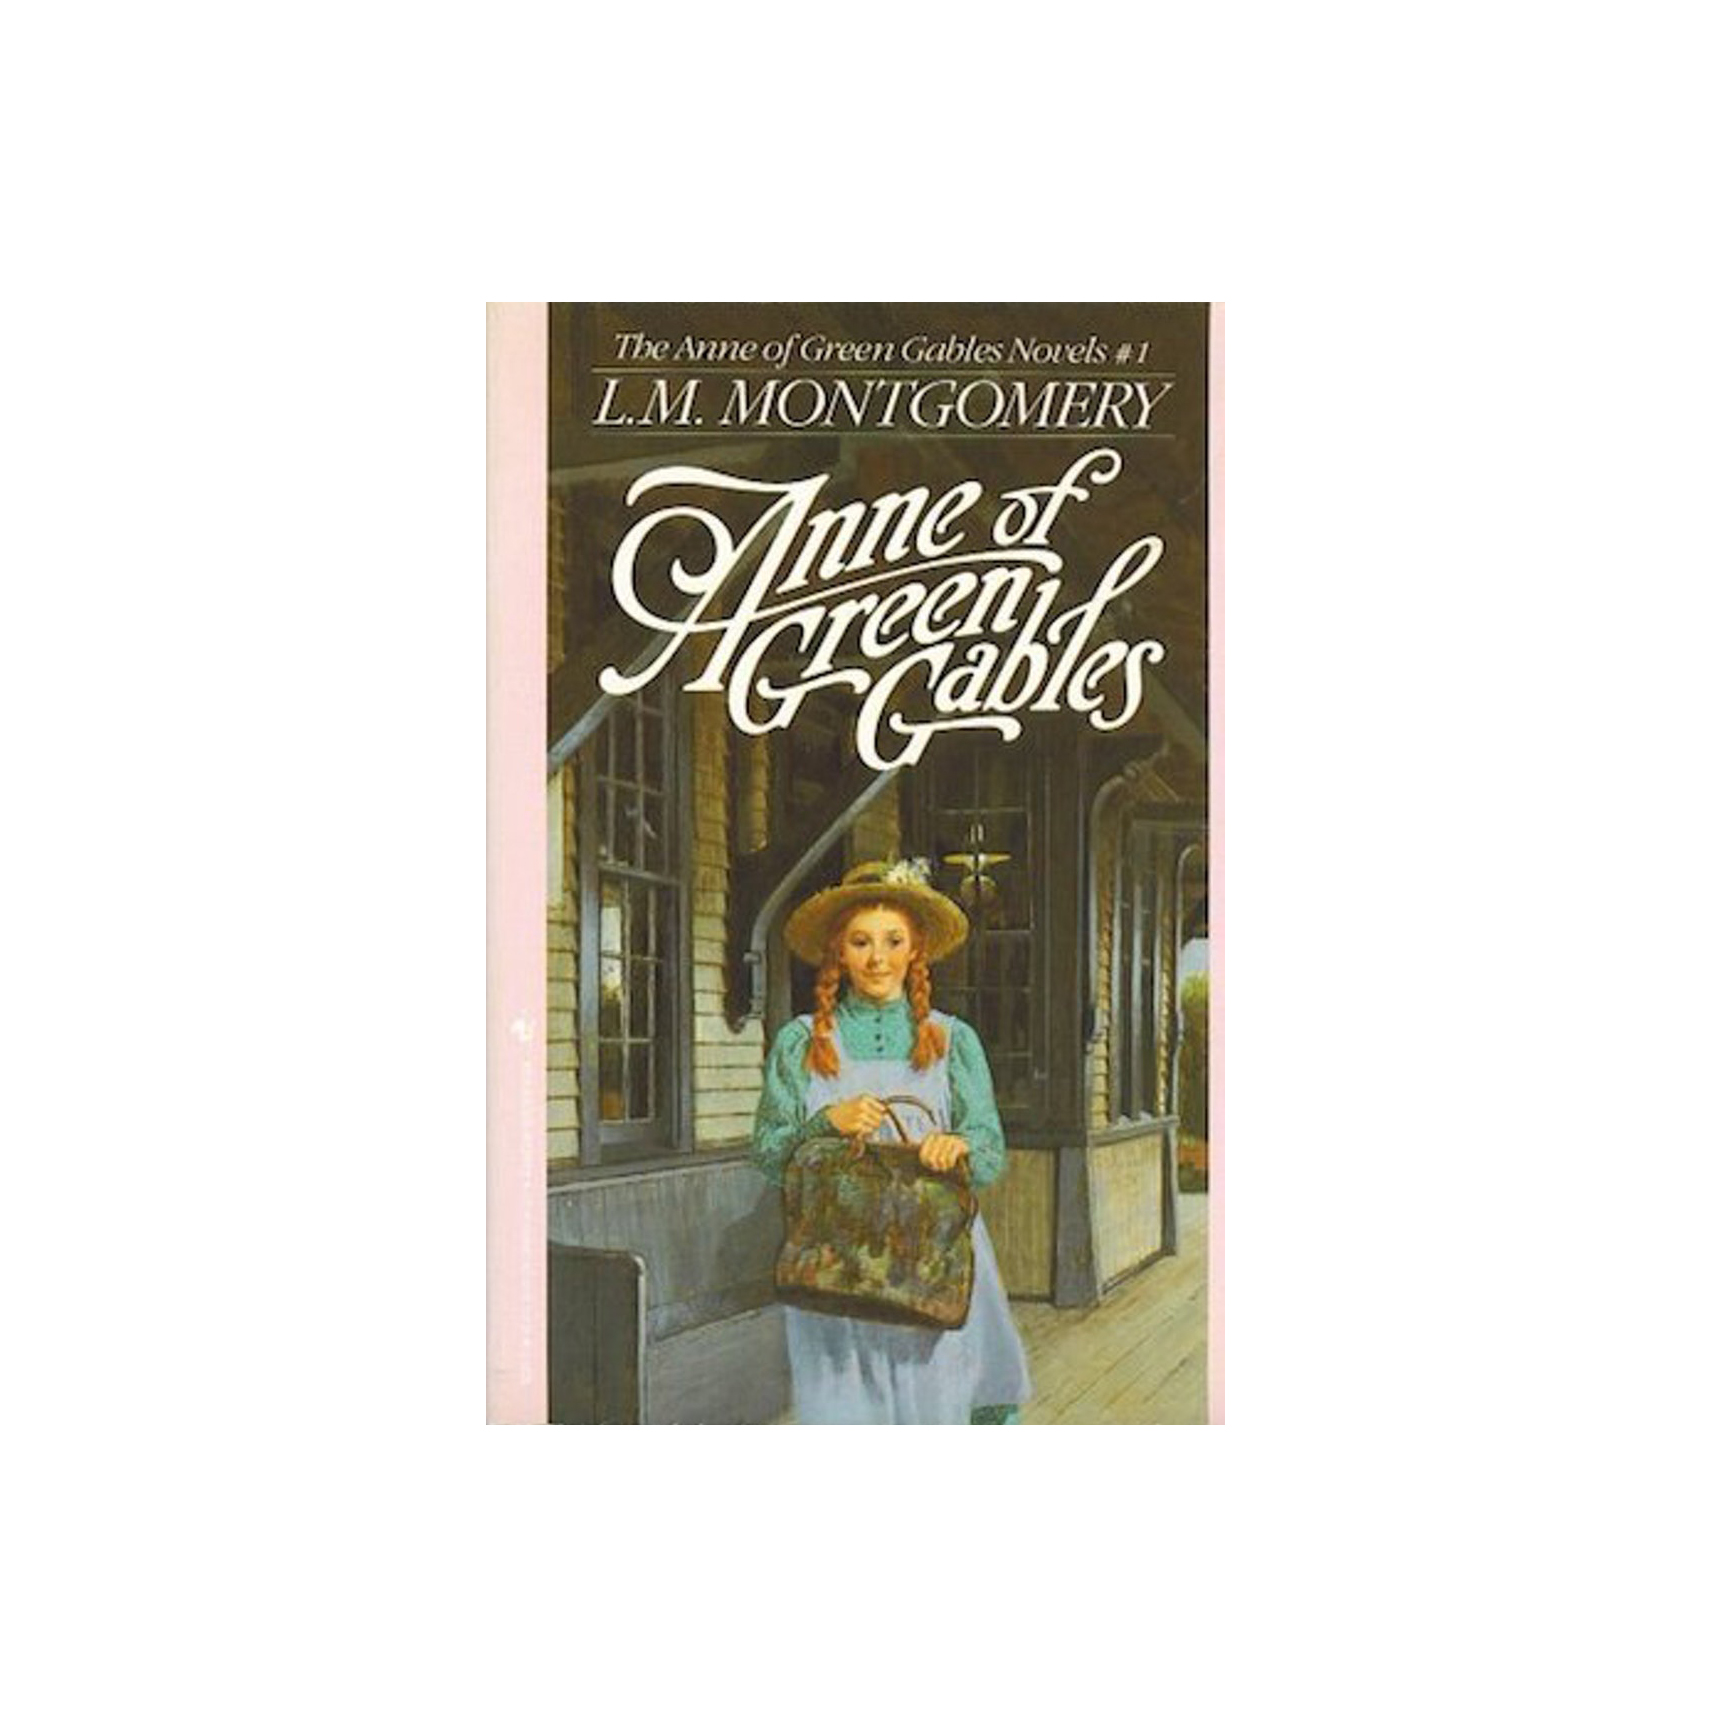 Anne of Green Gables, by L. M. Montgomery